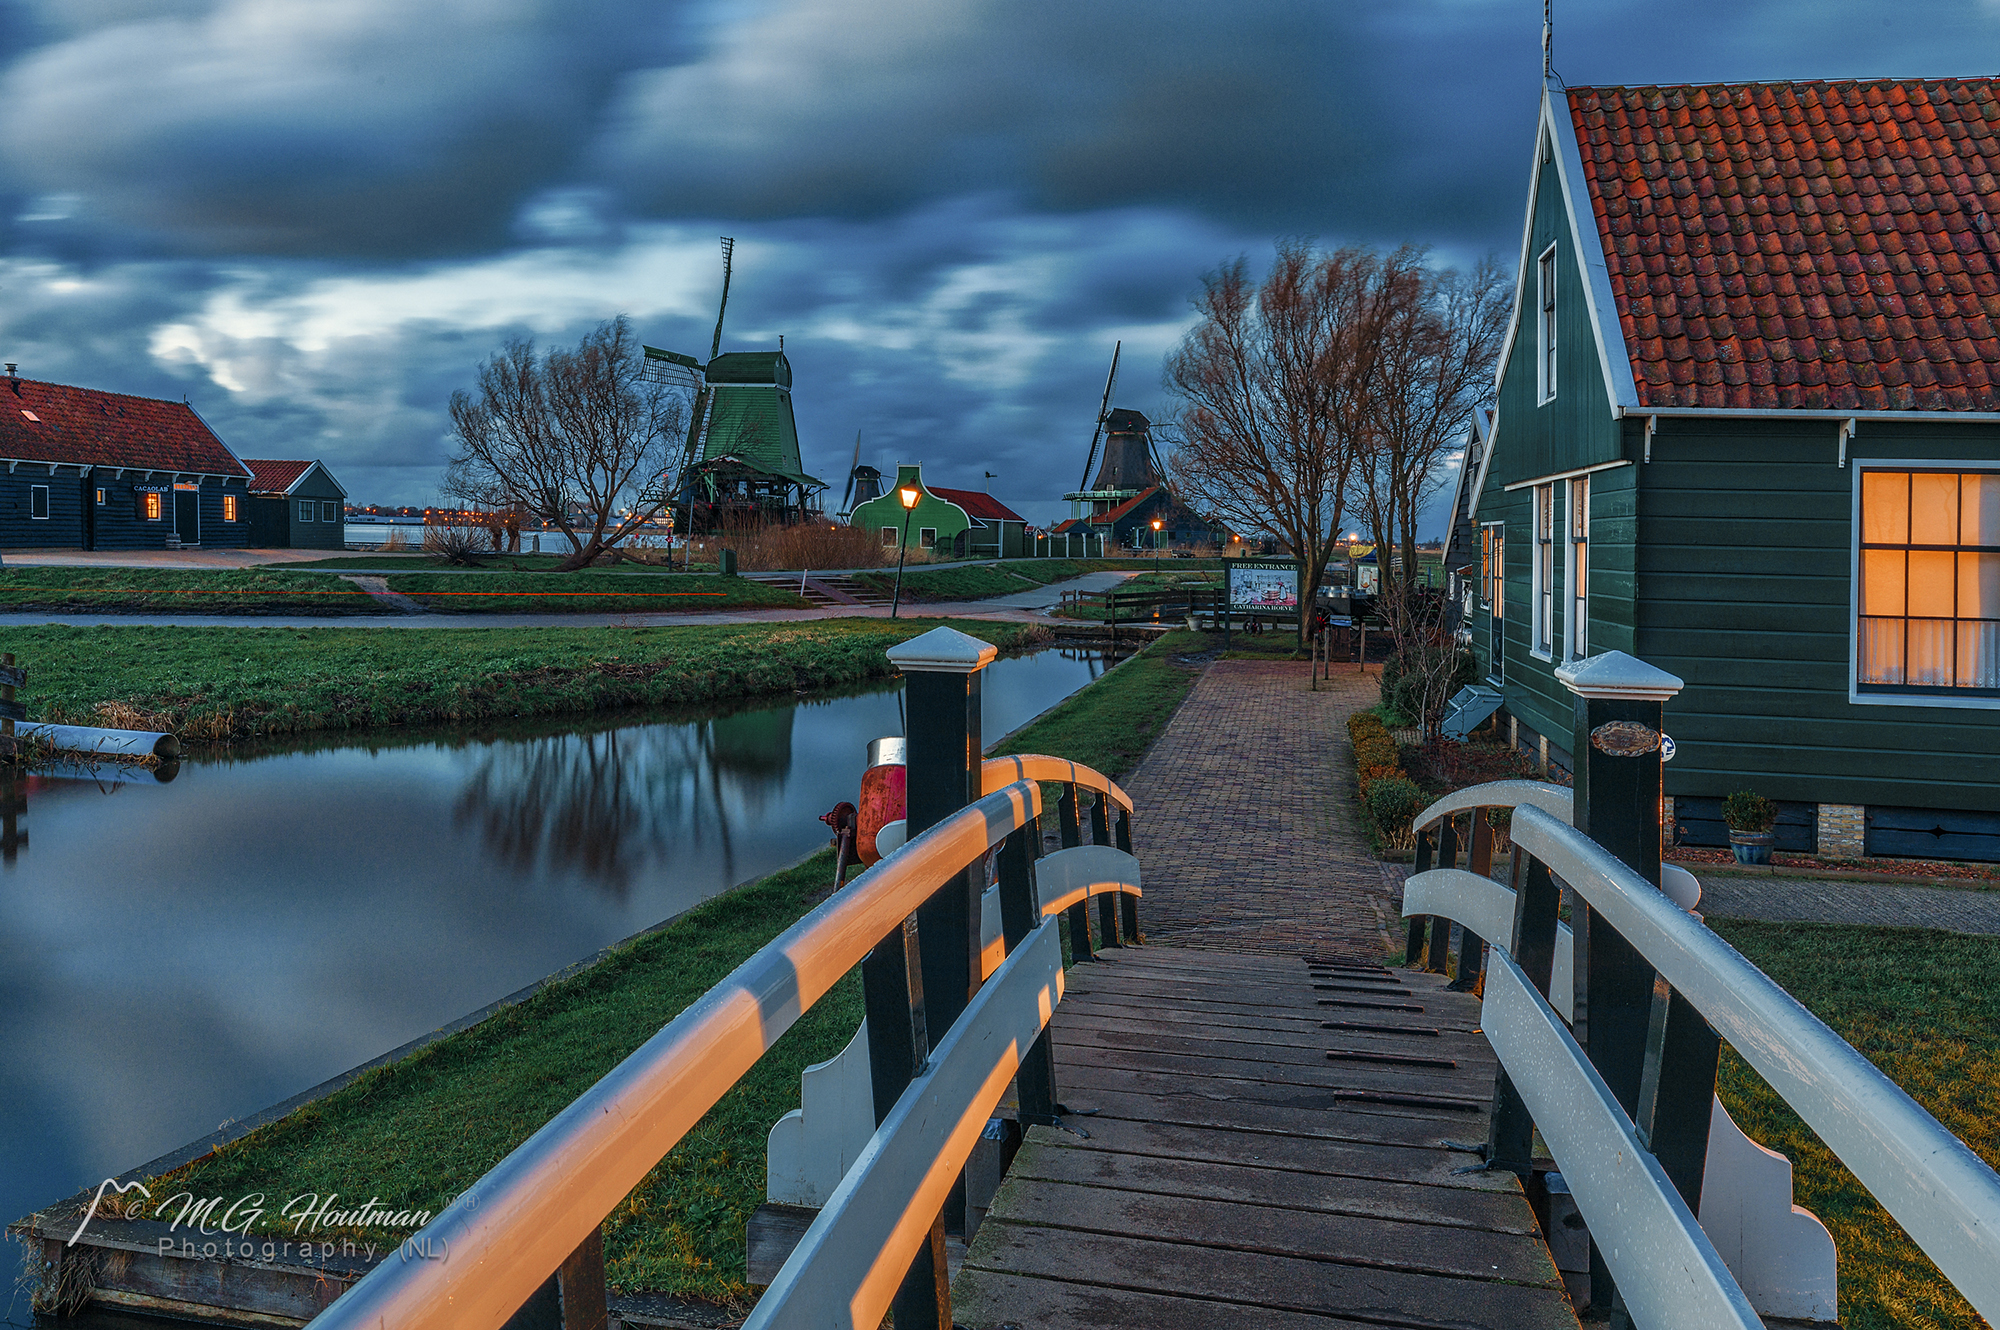 The Old Cheesefarm - Zaanse Schans (NL) versie 2